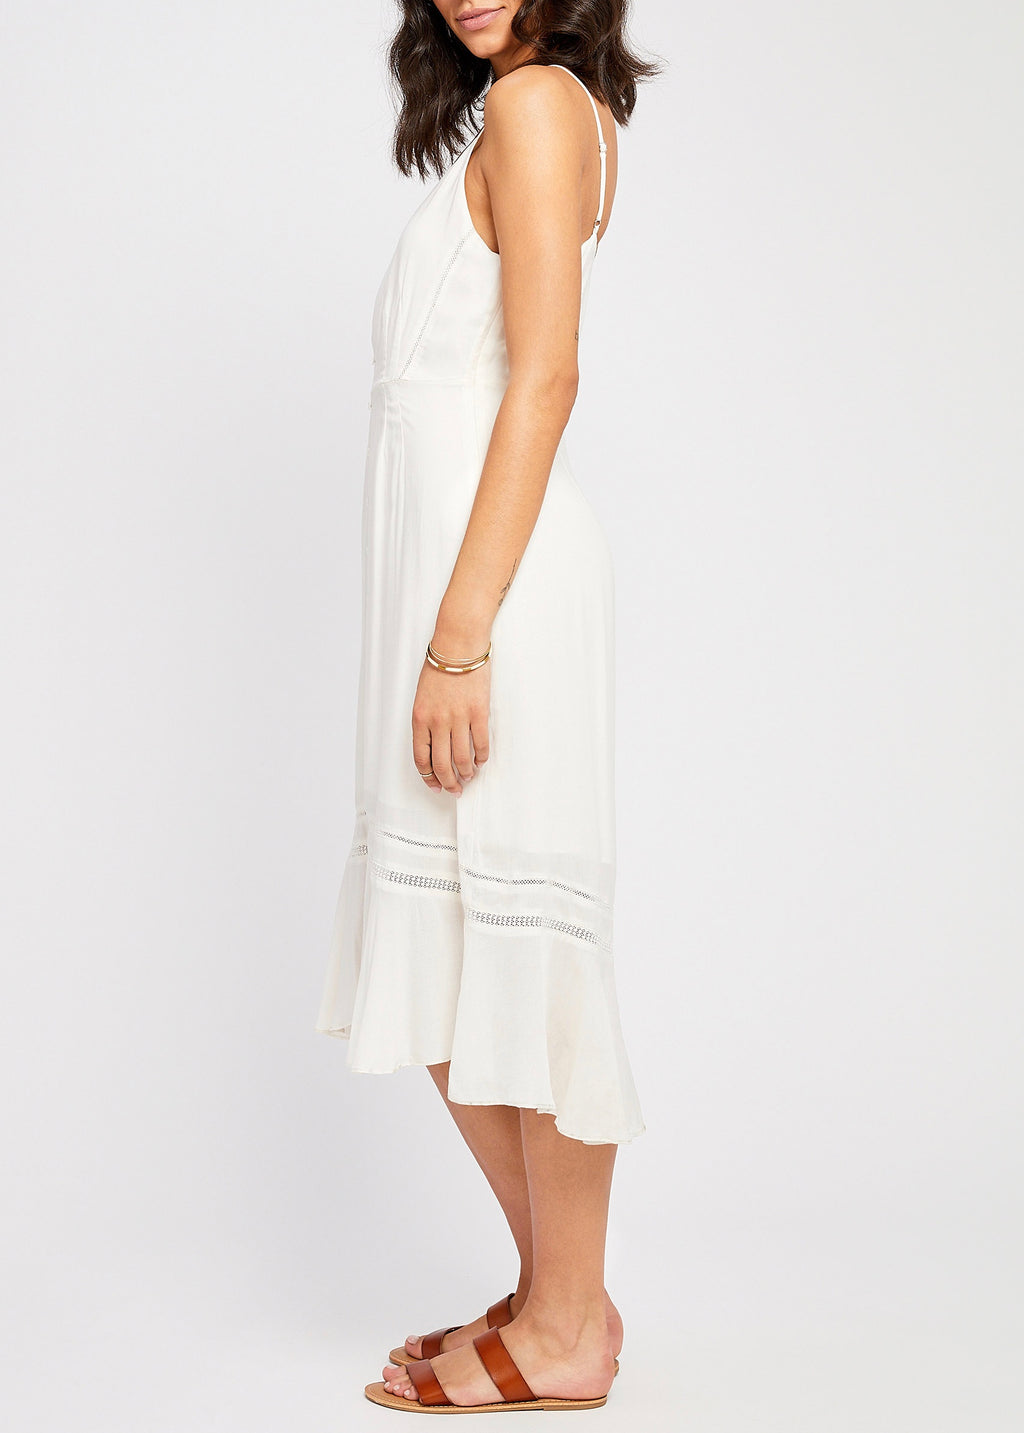 Belafonte Dress